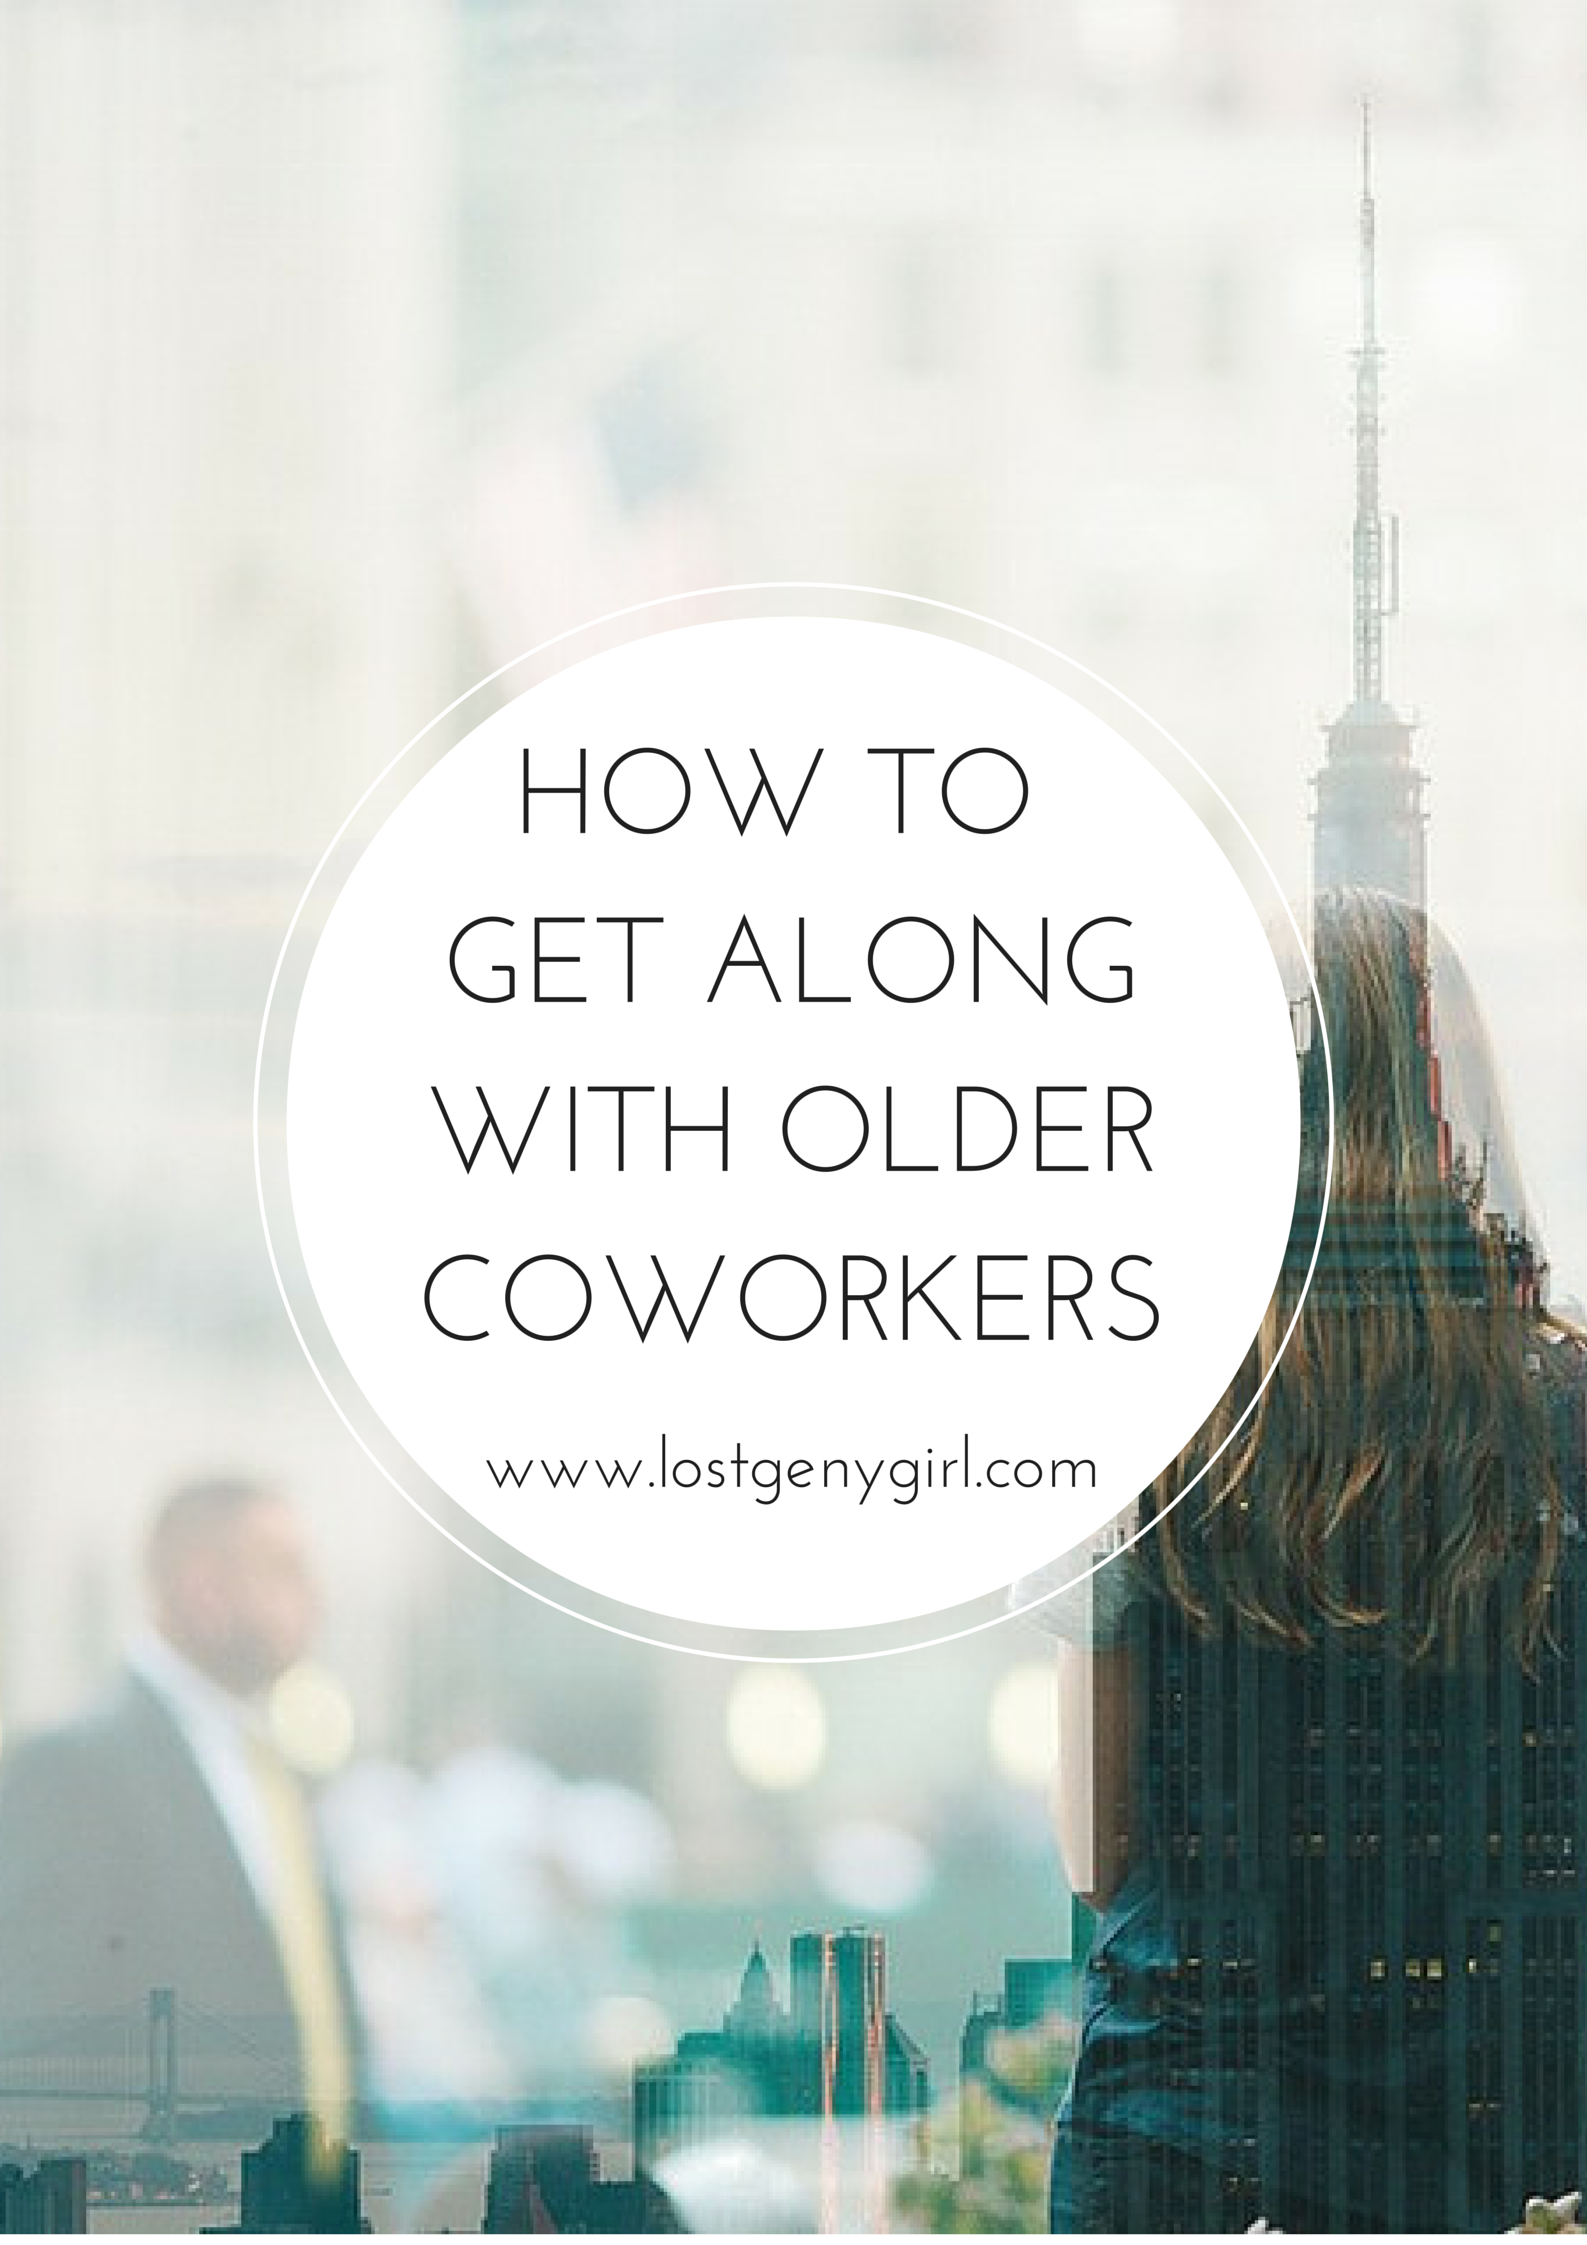 How to Get Along With Older Coworkers